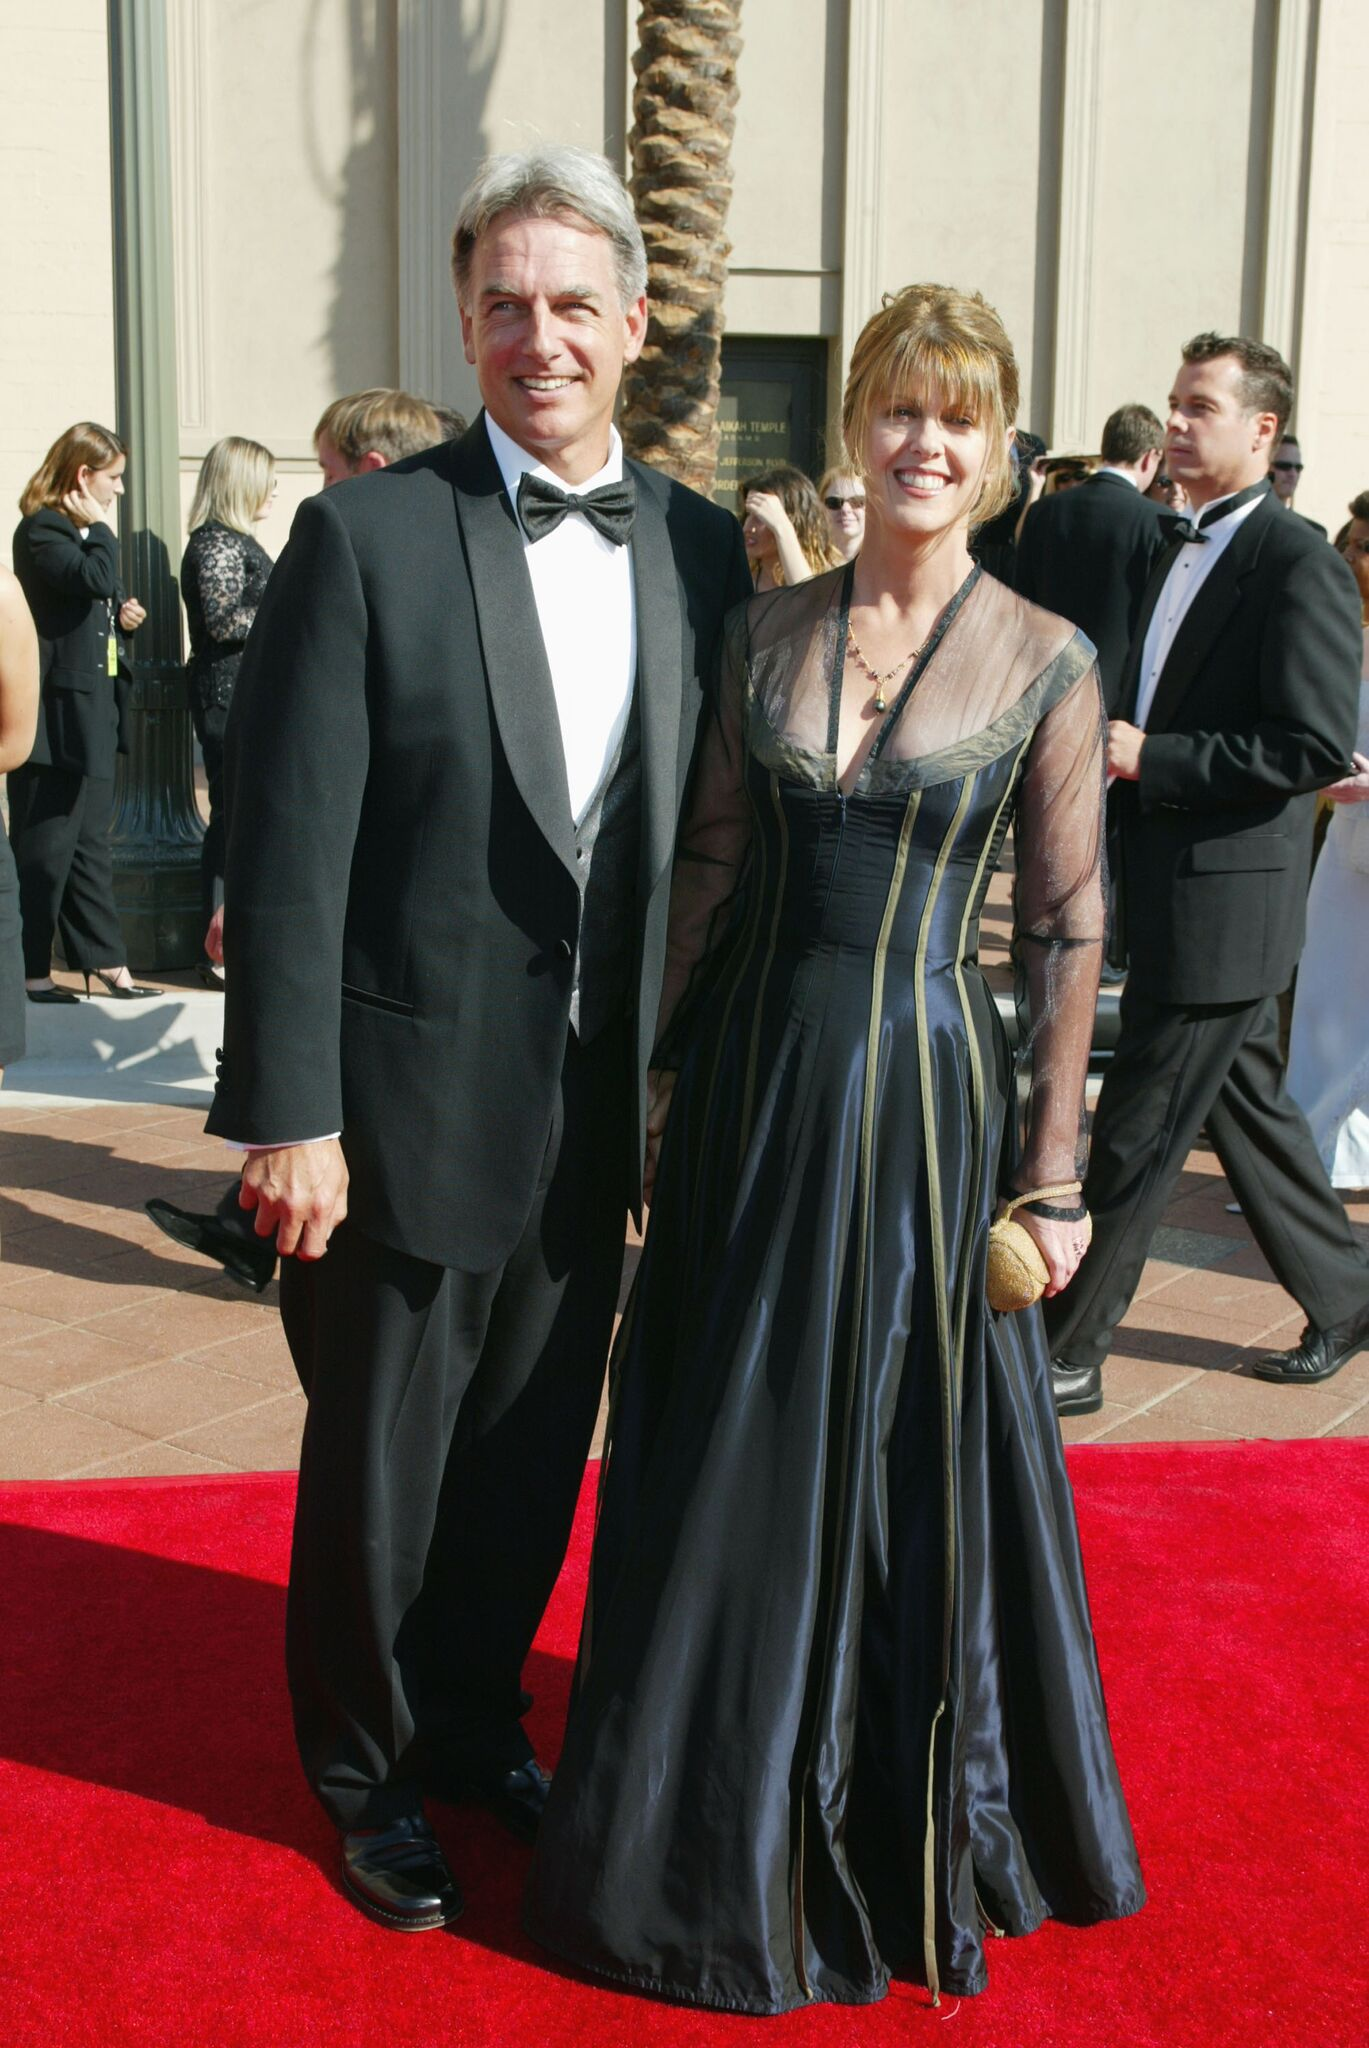 Mark Harmon and Pam Dawber at the 2002 Creative Arts Emmy Awards at the Shrine Auditorium | Getty Images